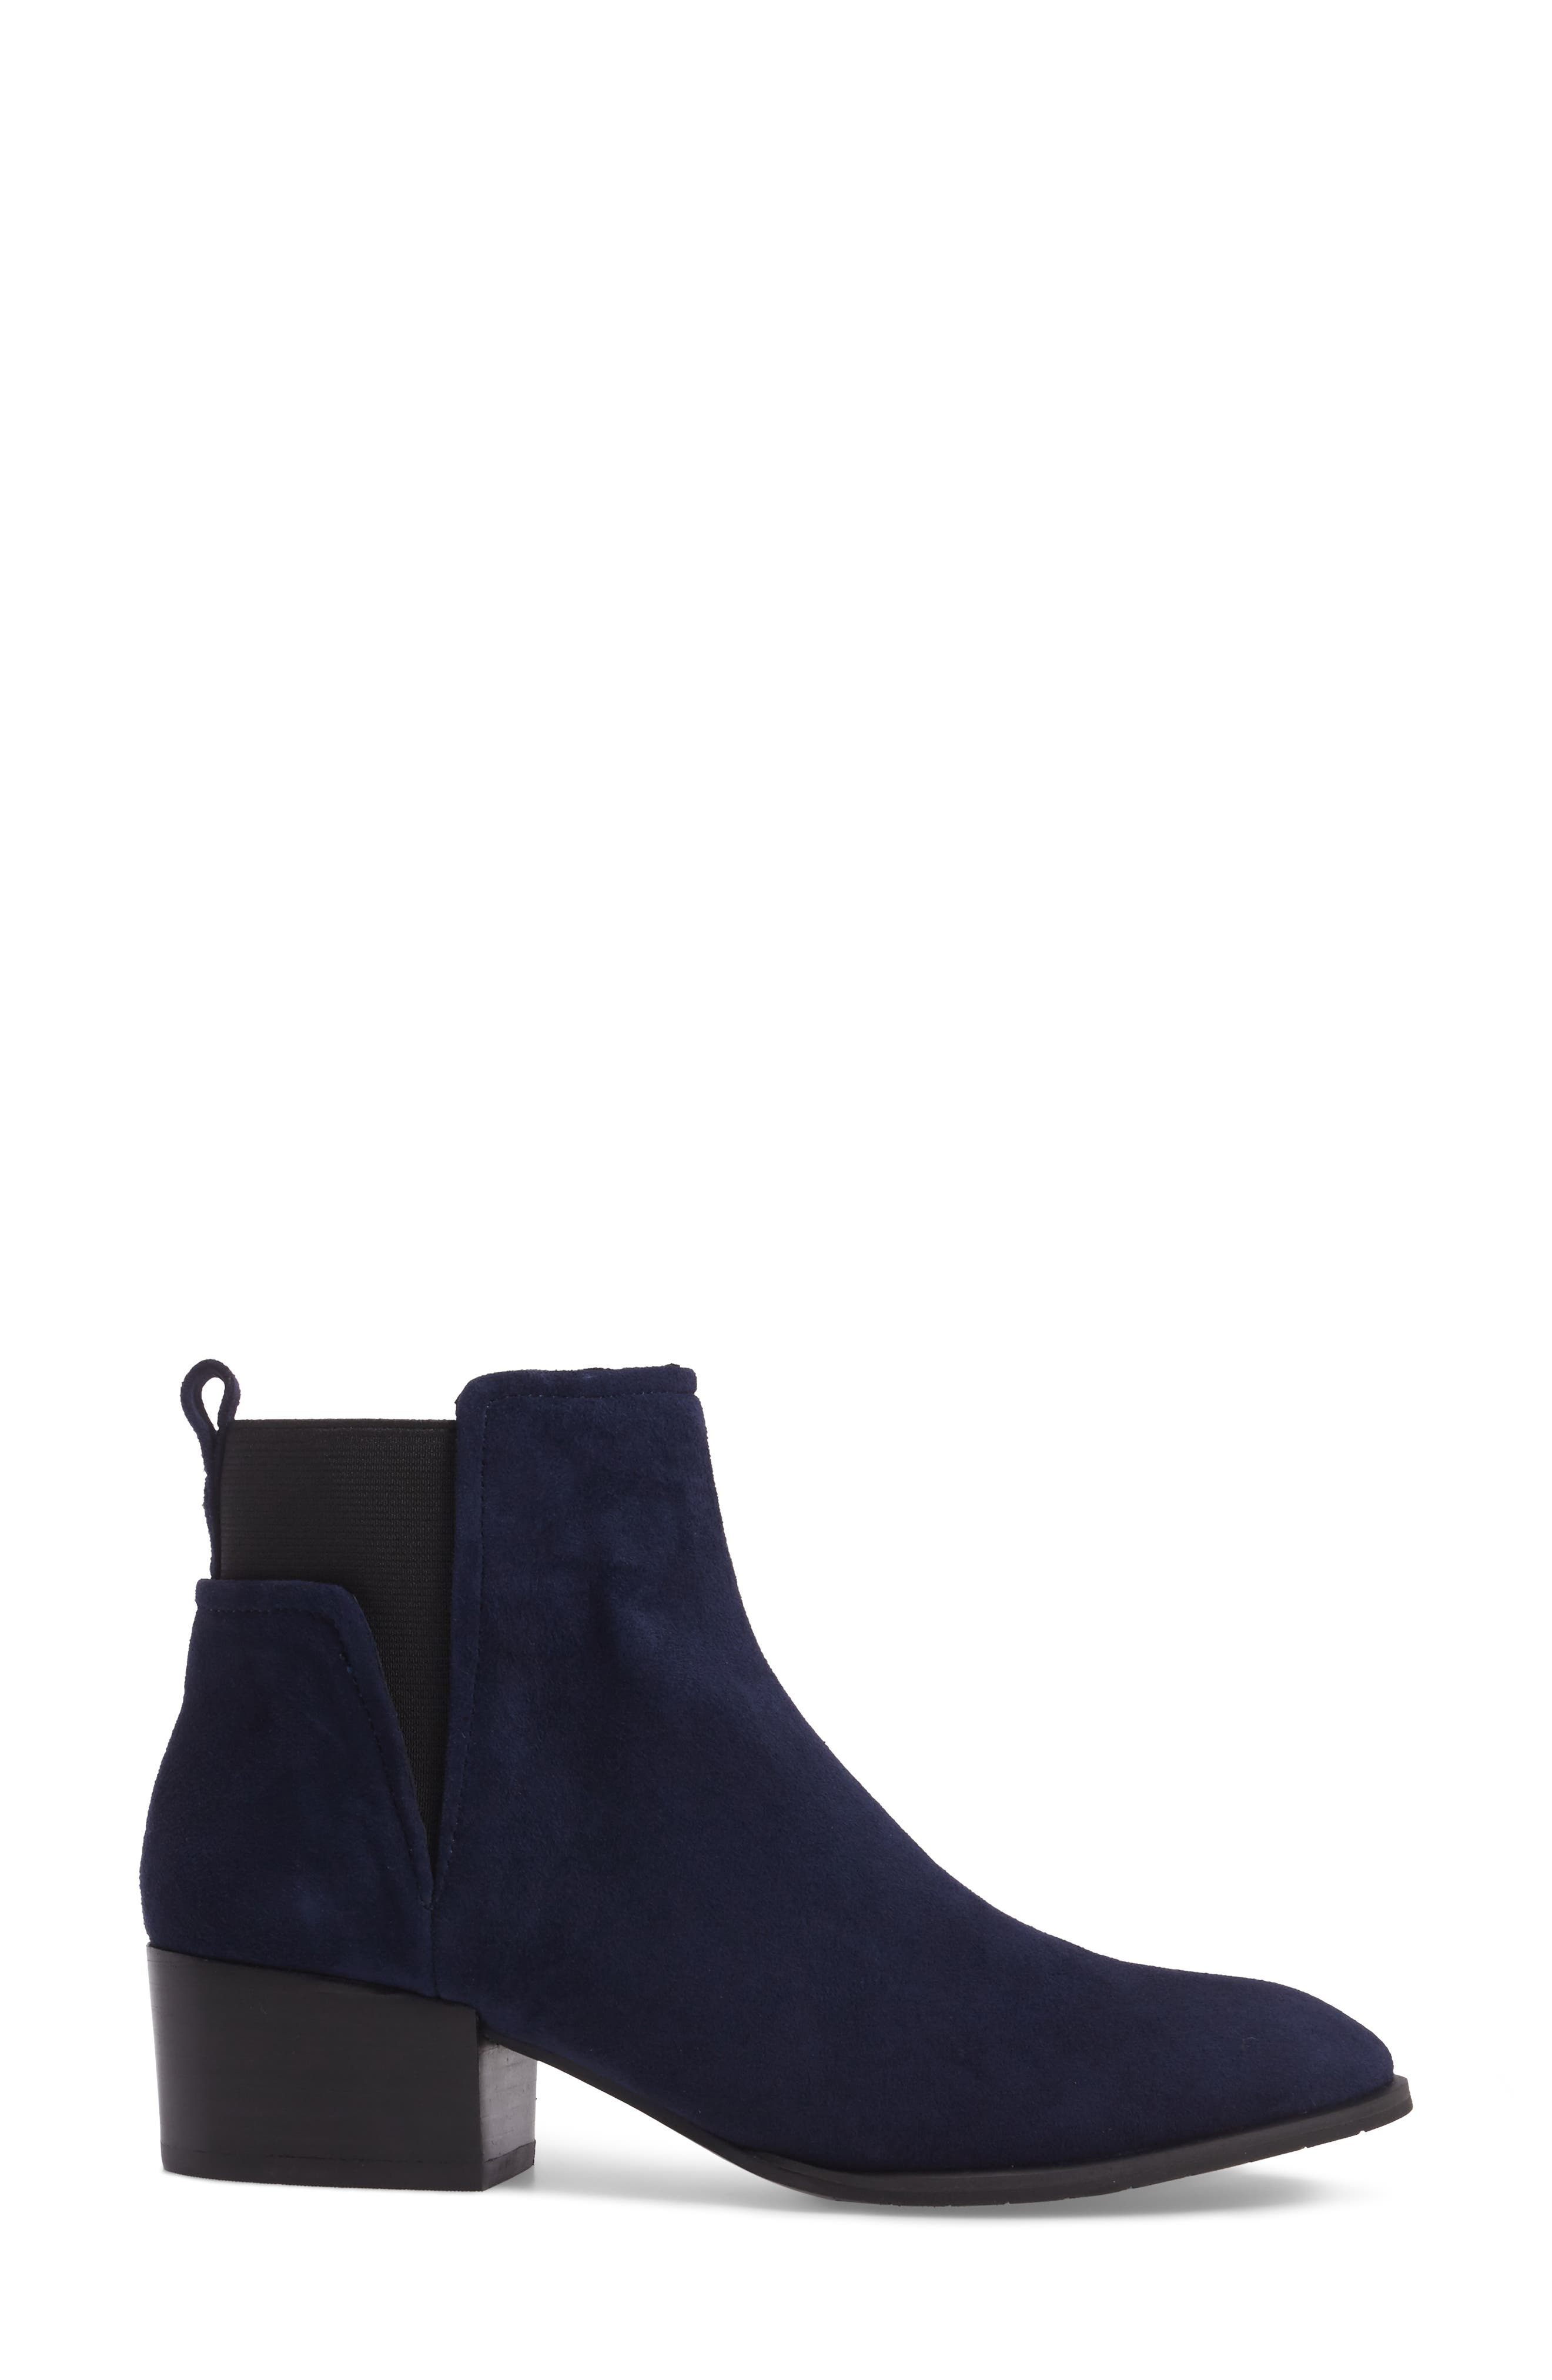 Artie Bootie,                             Alternate thumbnail 3, color,                             Navy Suede